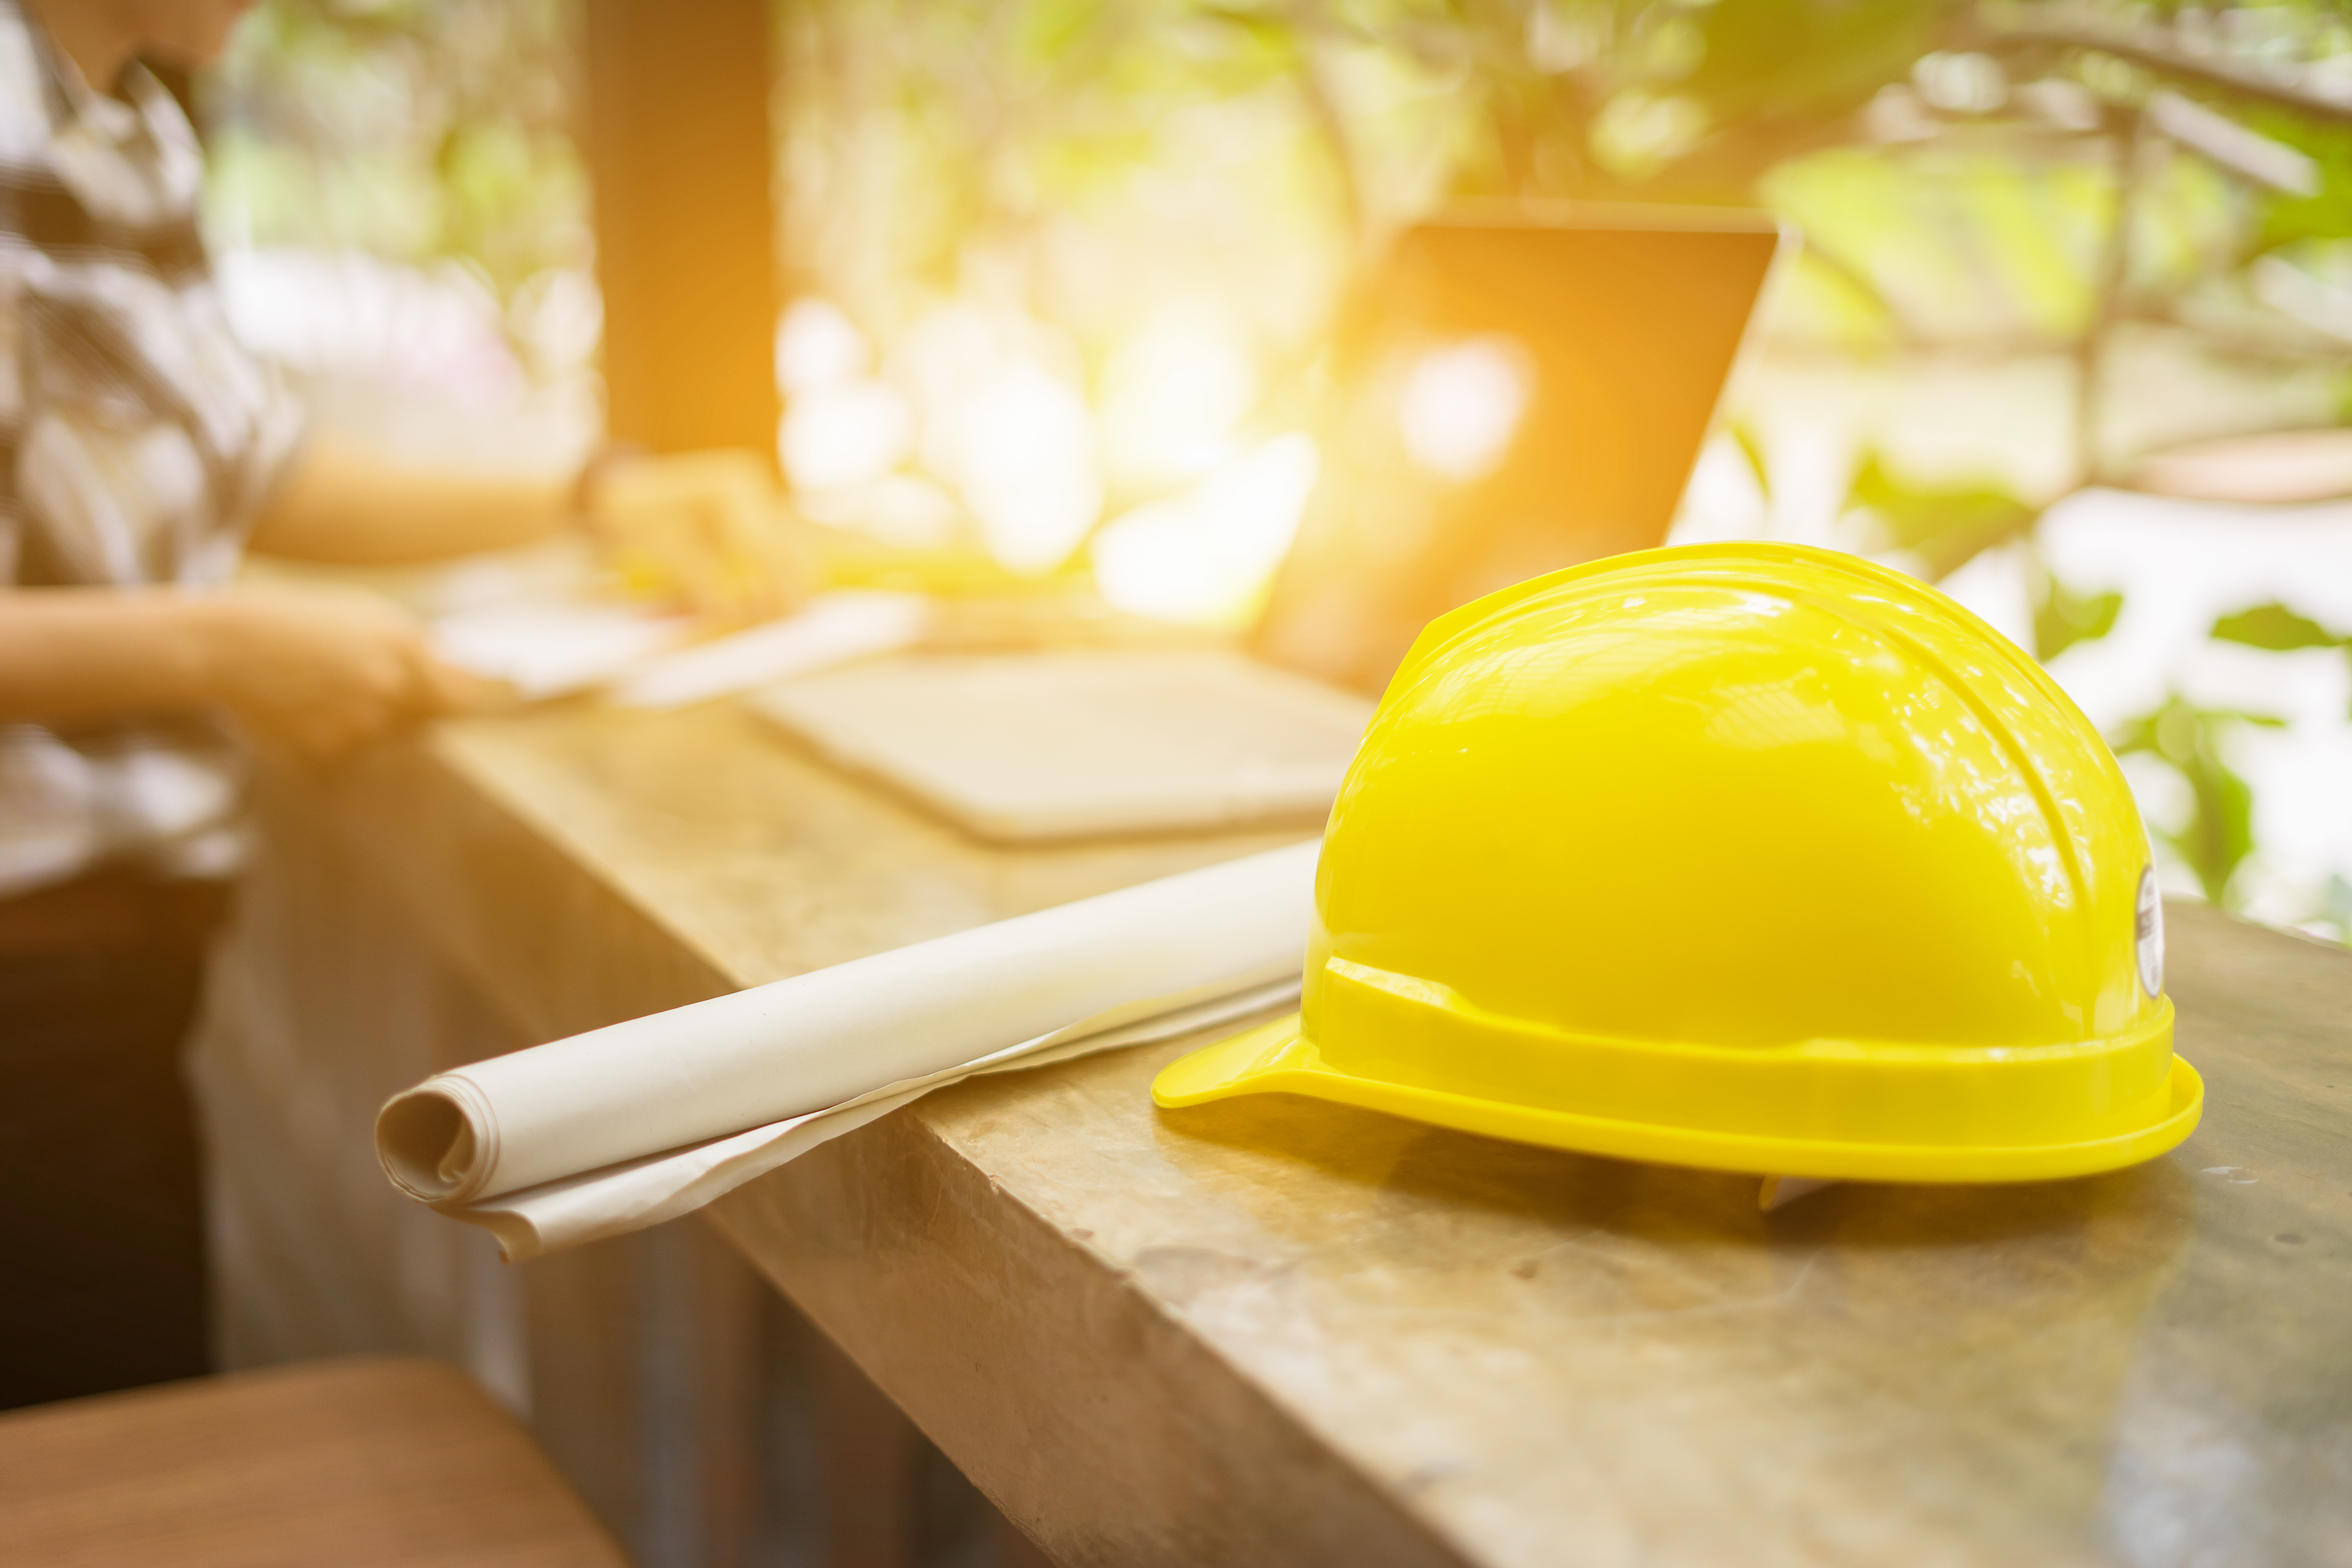 safety health worker engineer construction industry 1575605 pxherecom